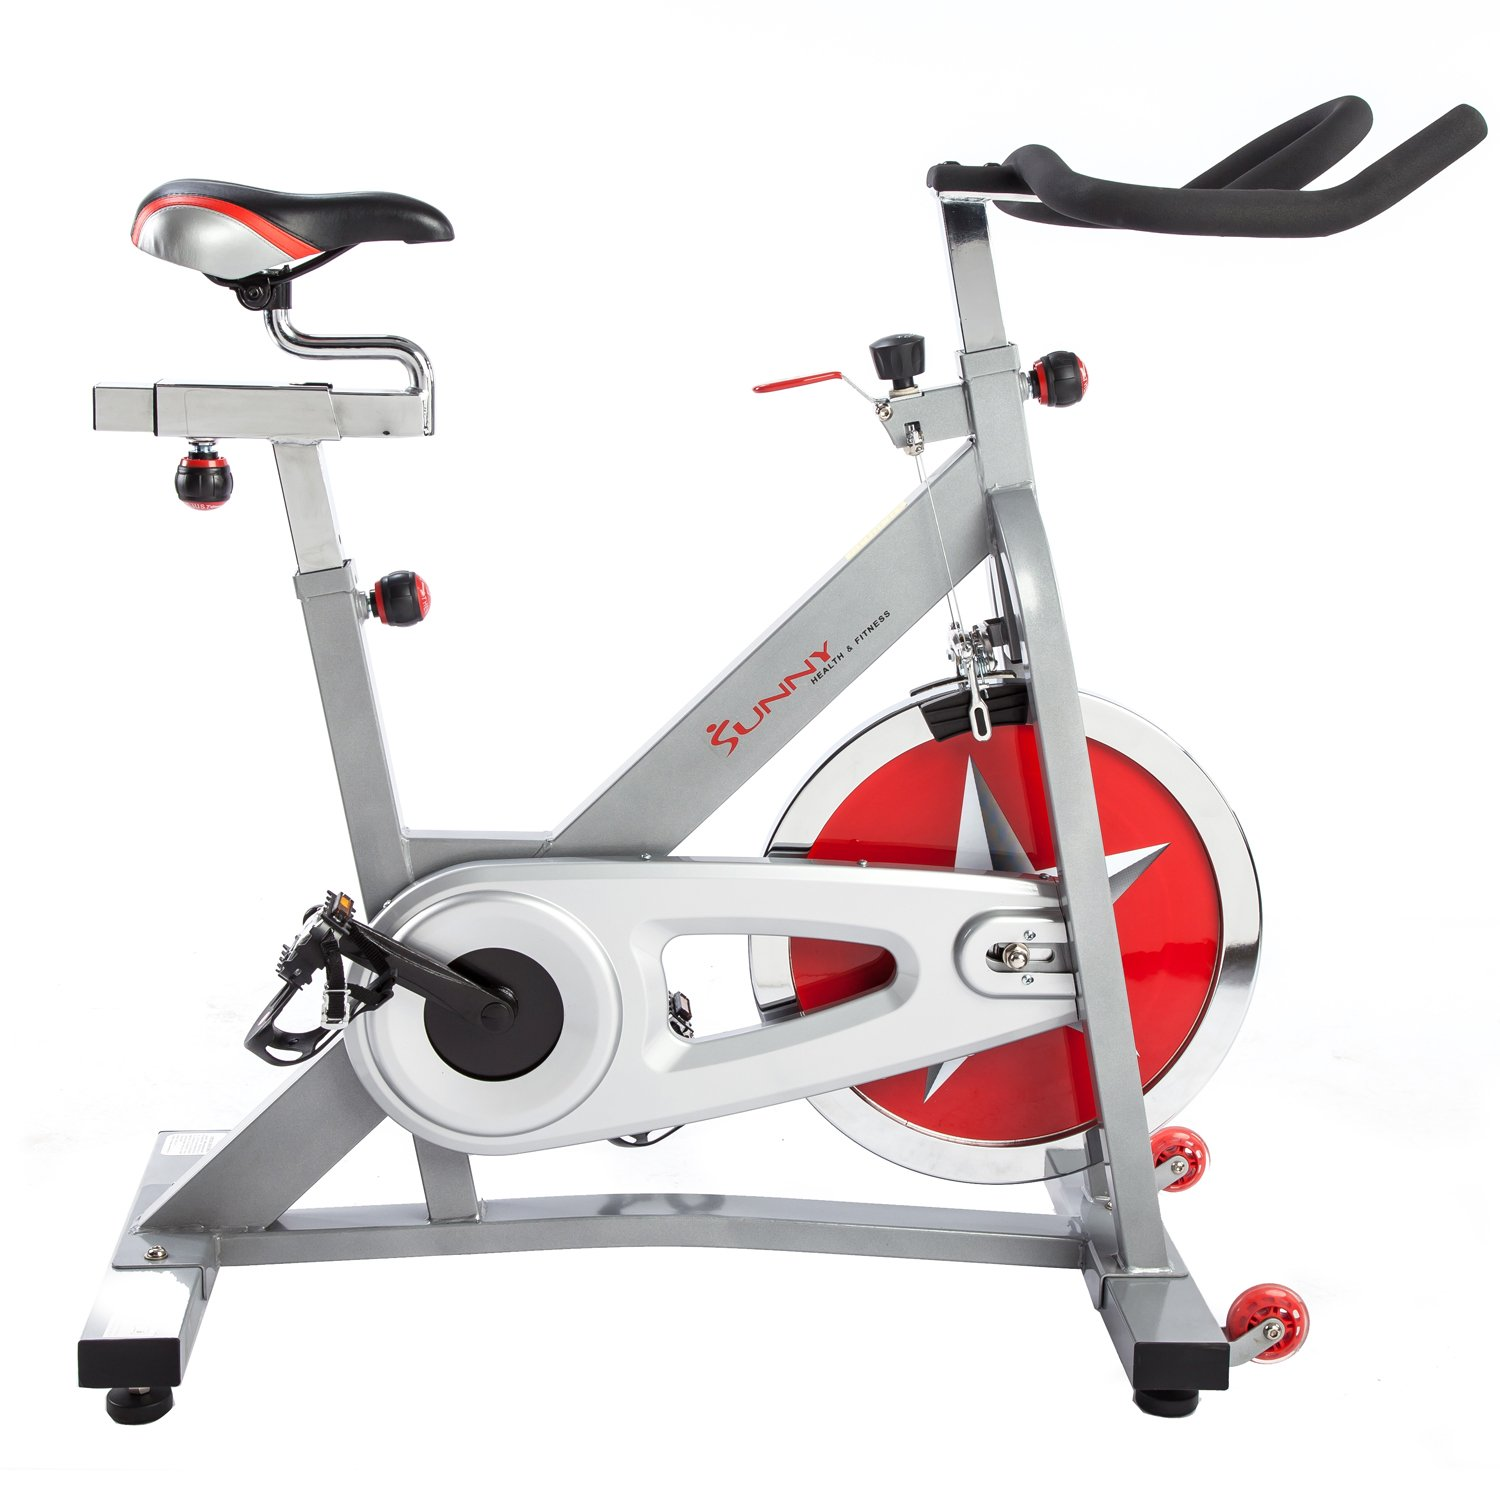 Best Rated Stationary Bike For Home